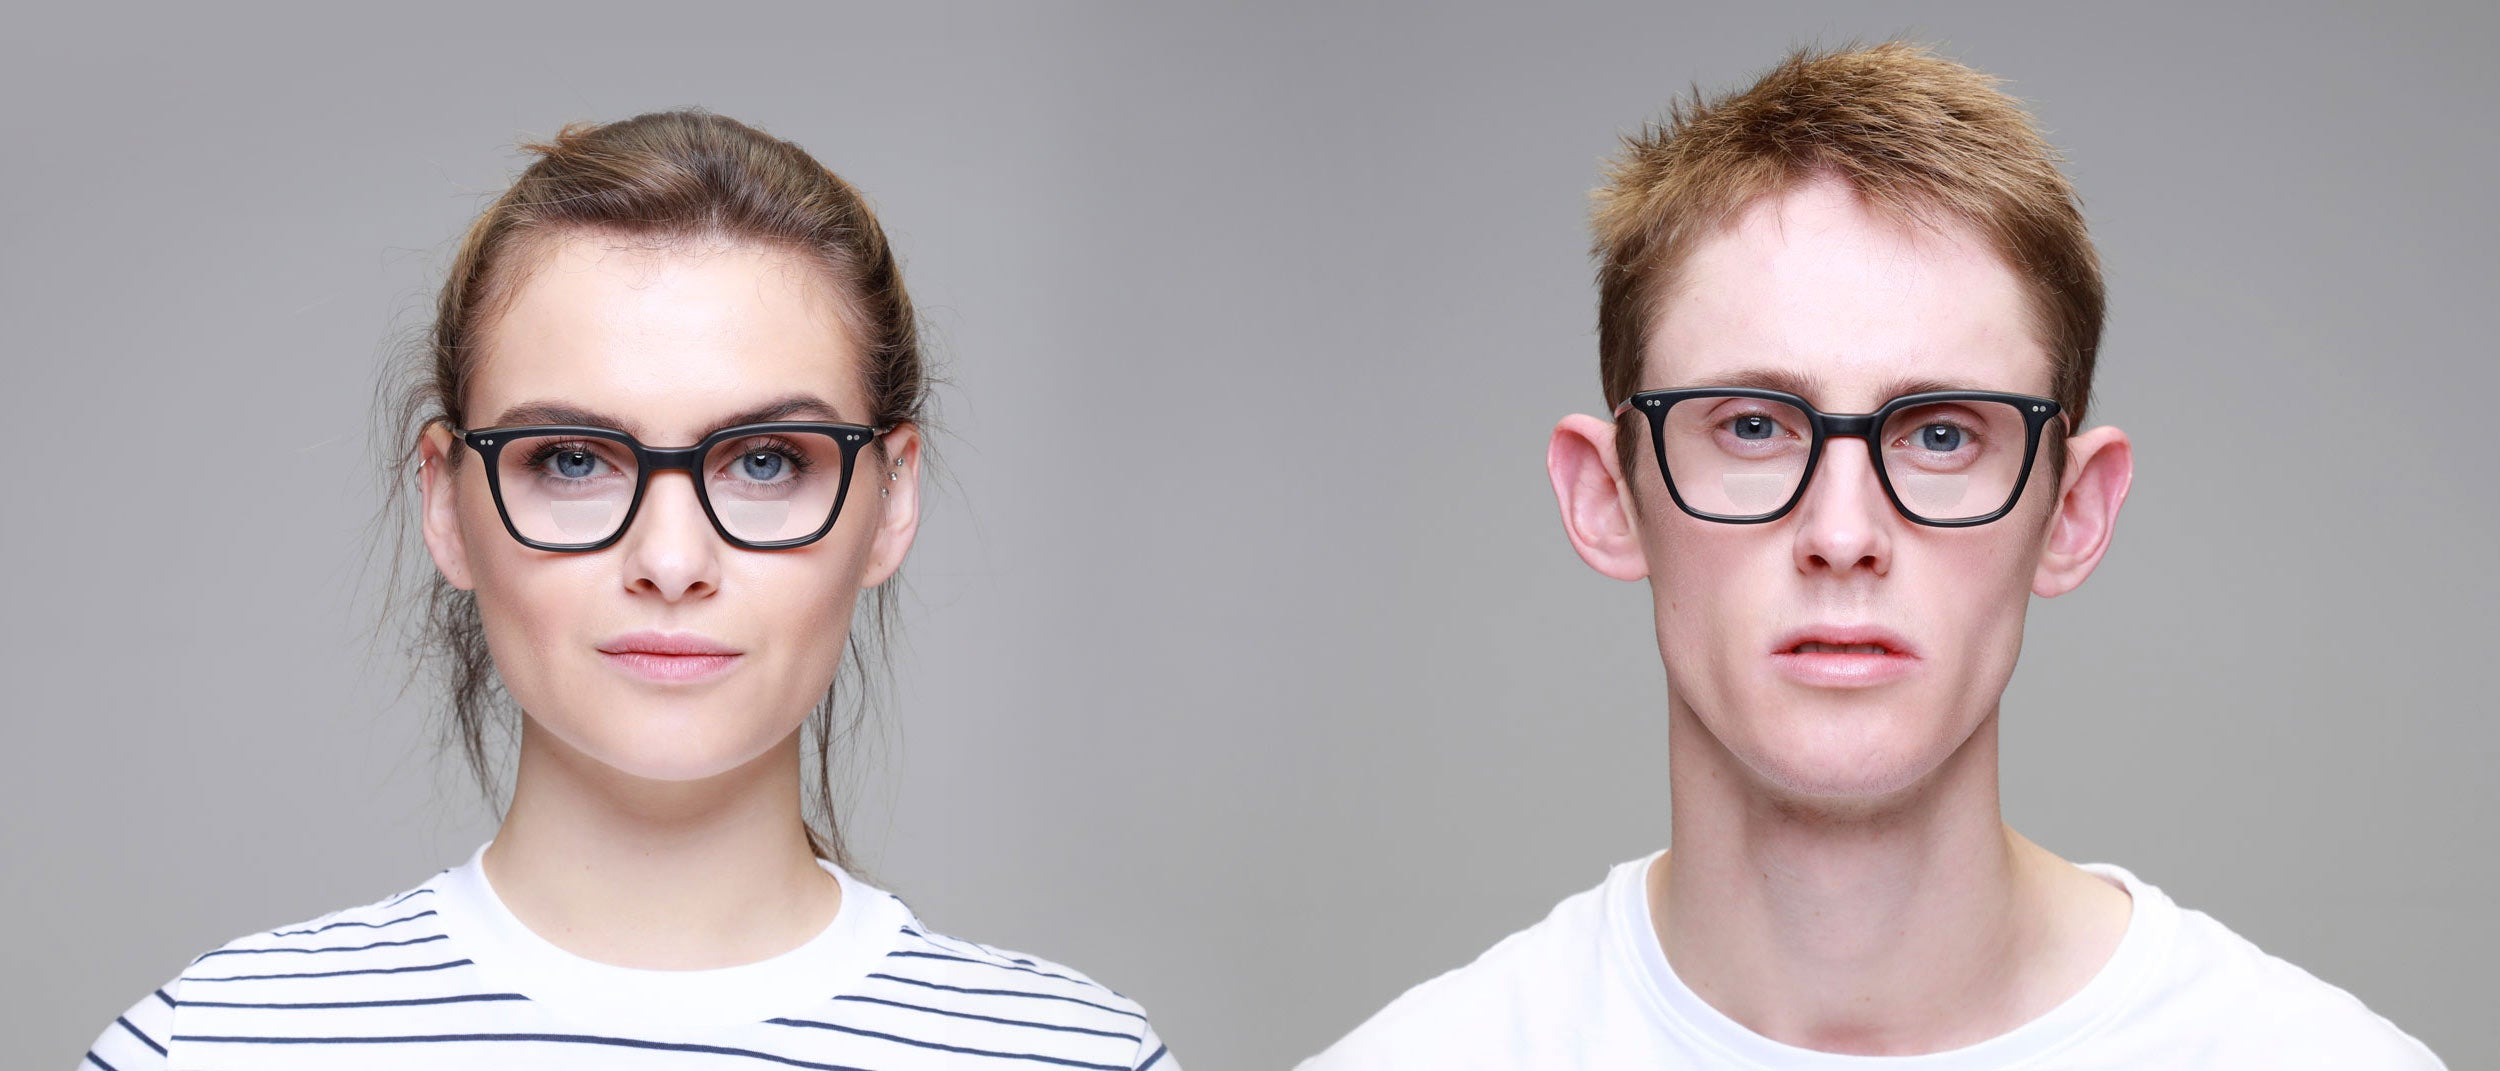 Man-and-Woman-Wearing-Bifocal-small-square-black-glasses